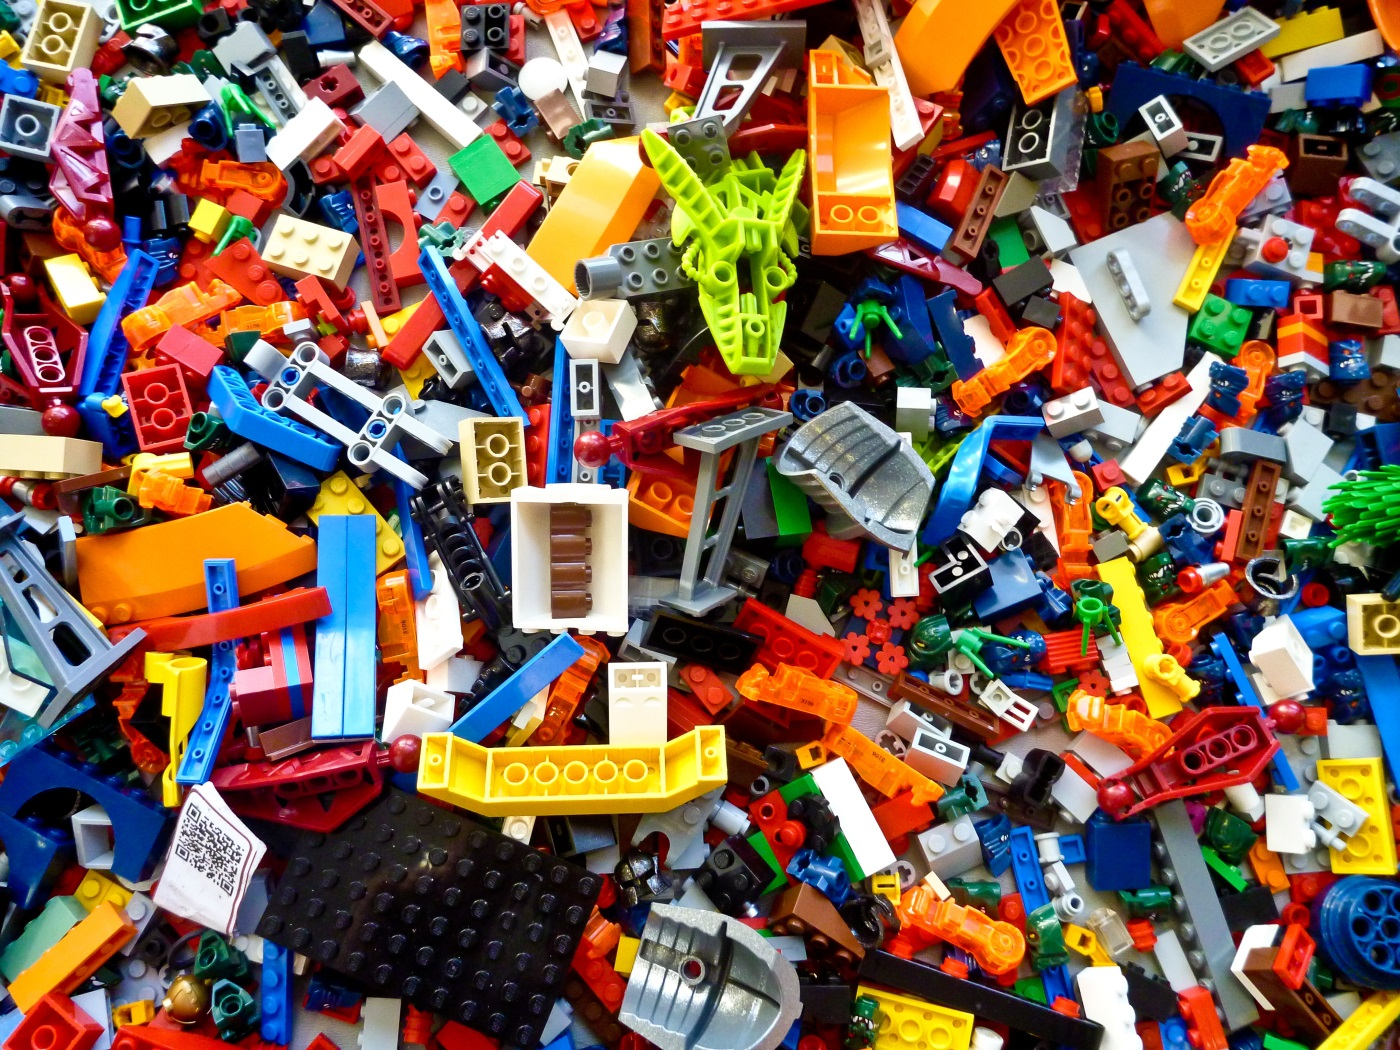 Pop along to the Library and create some Space Lego models.